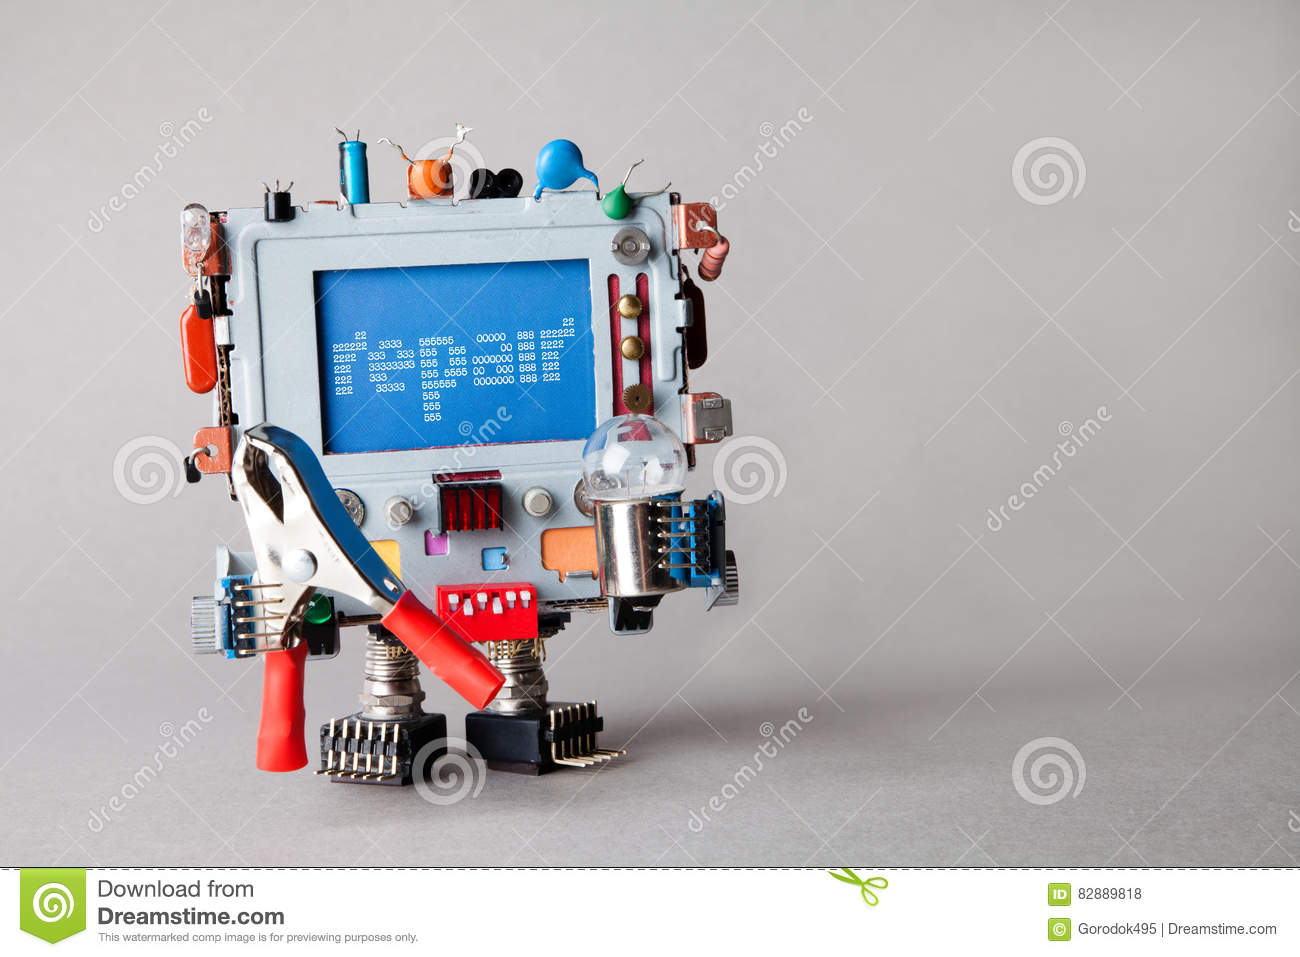 Repair computer service concept. Robot engineer with pliers and light bulb. alert warning message on blue screen monitor